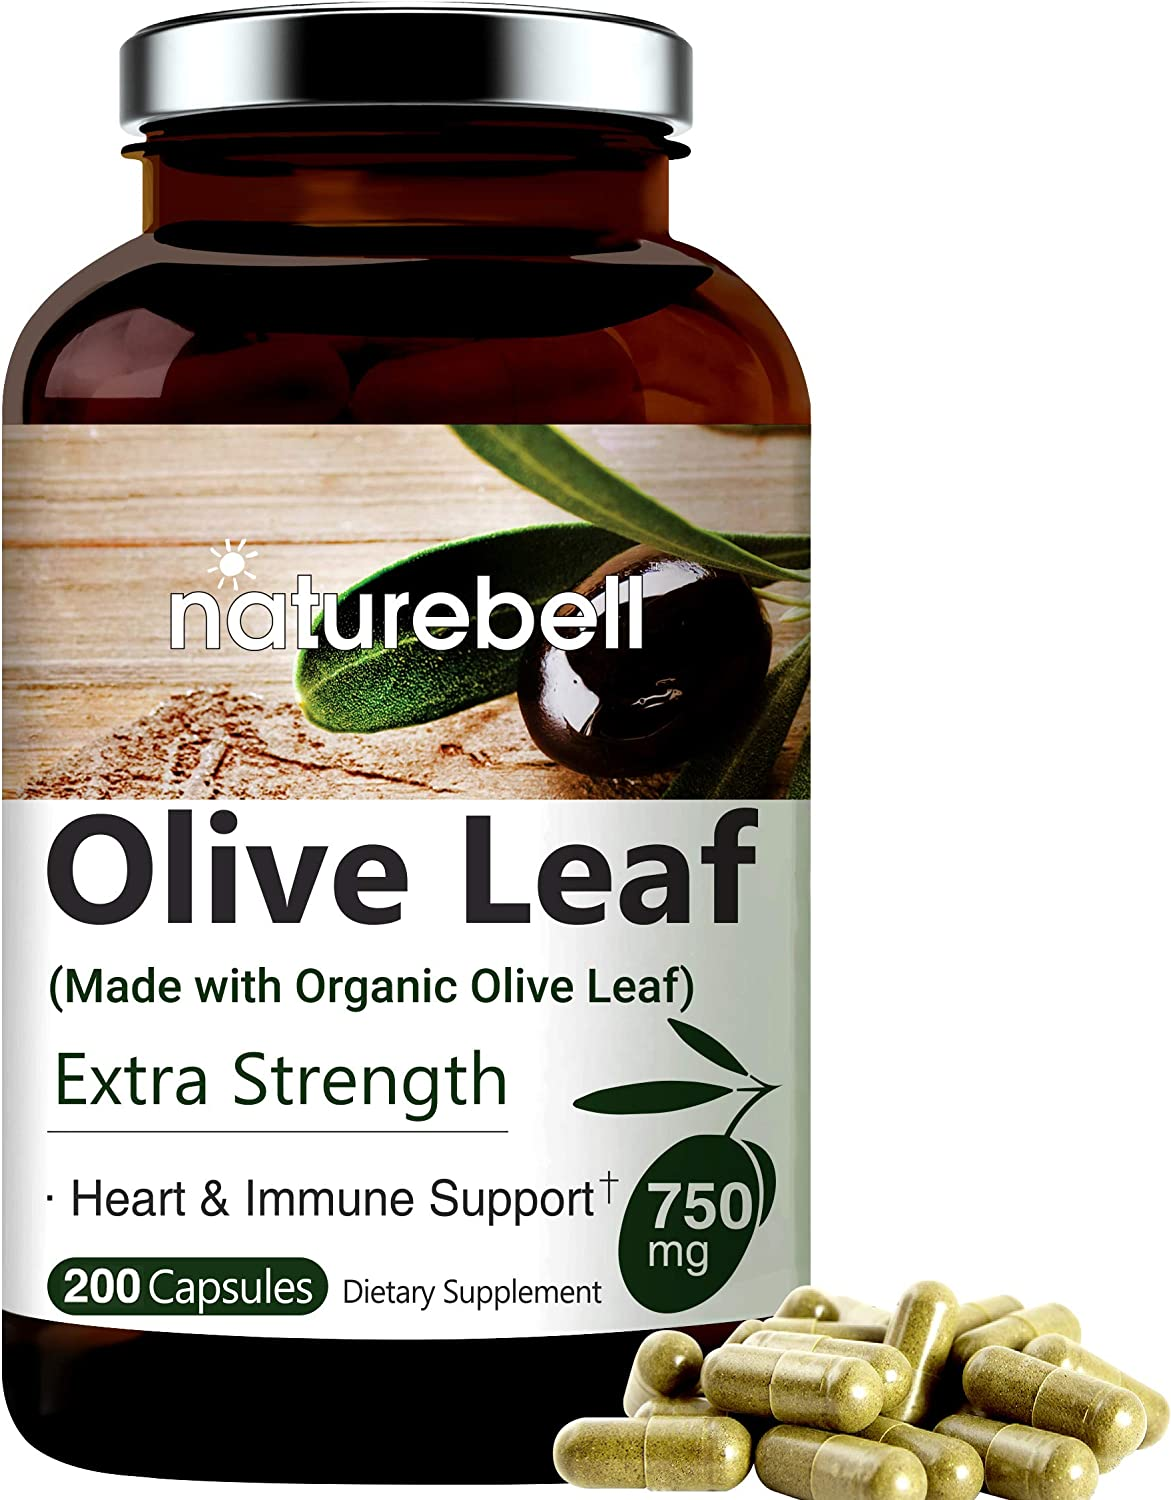 Olive Leaf Extract 750mg 200 with Special sale item Capsules Tucson Mall Organic Made